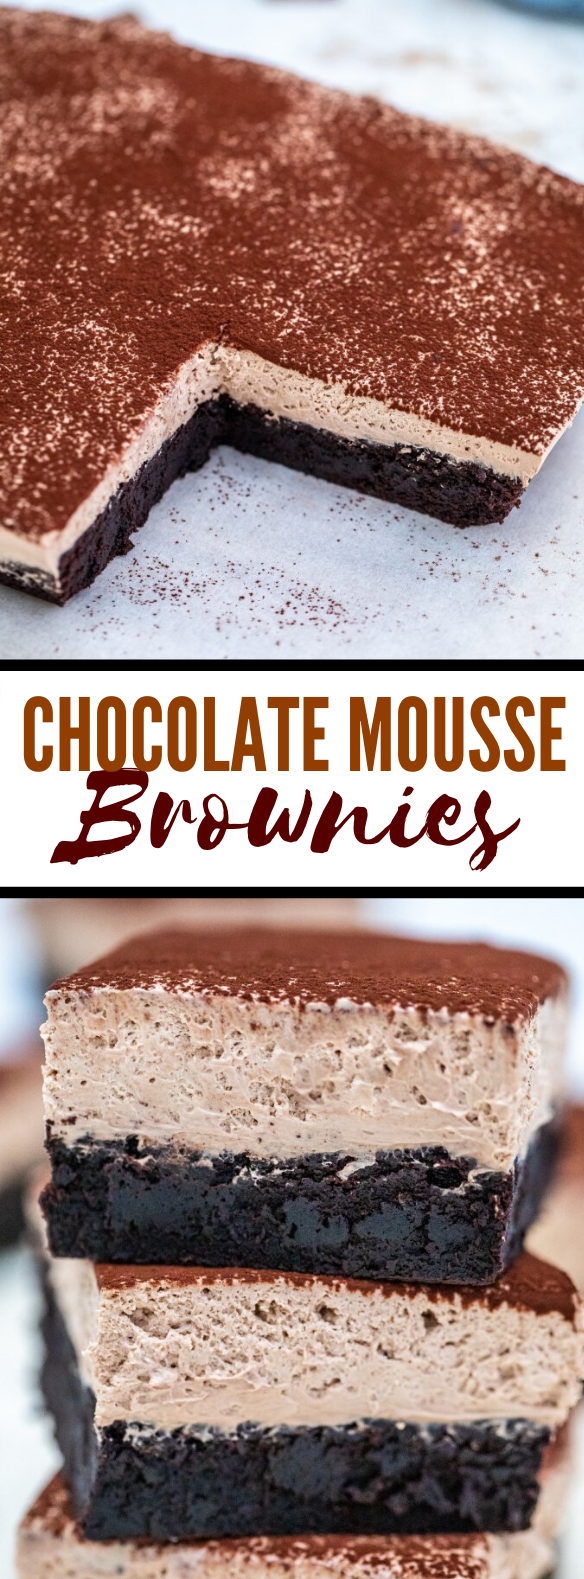 Chocolate Mousse Brownies or Best Brownies EVER! #desserts #cake